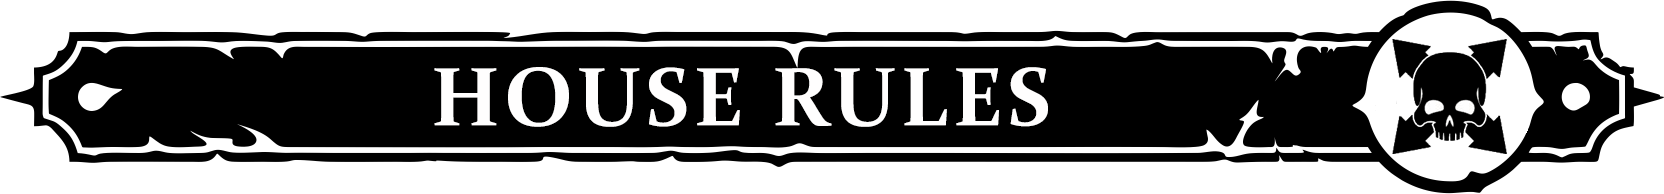 House Rules</a>